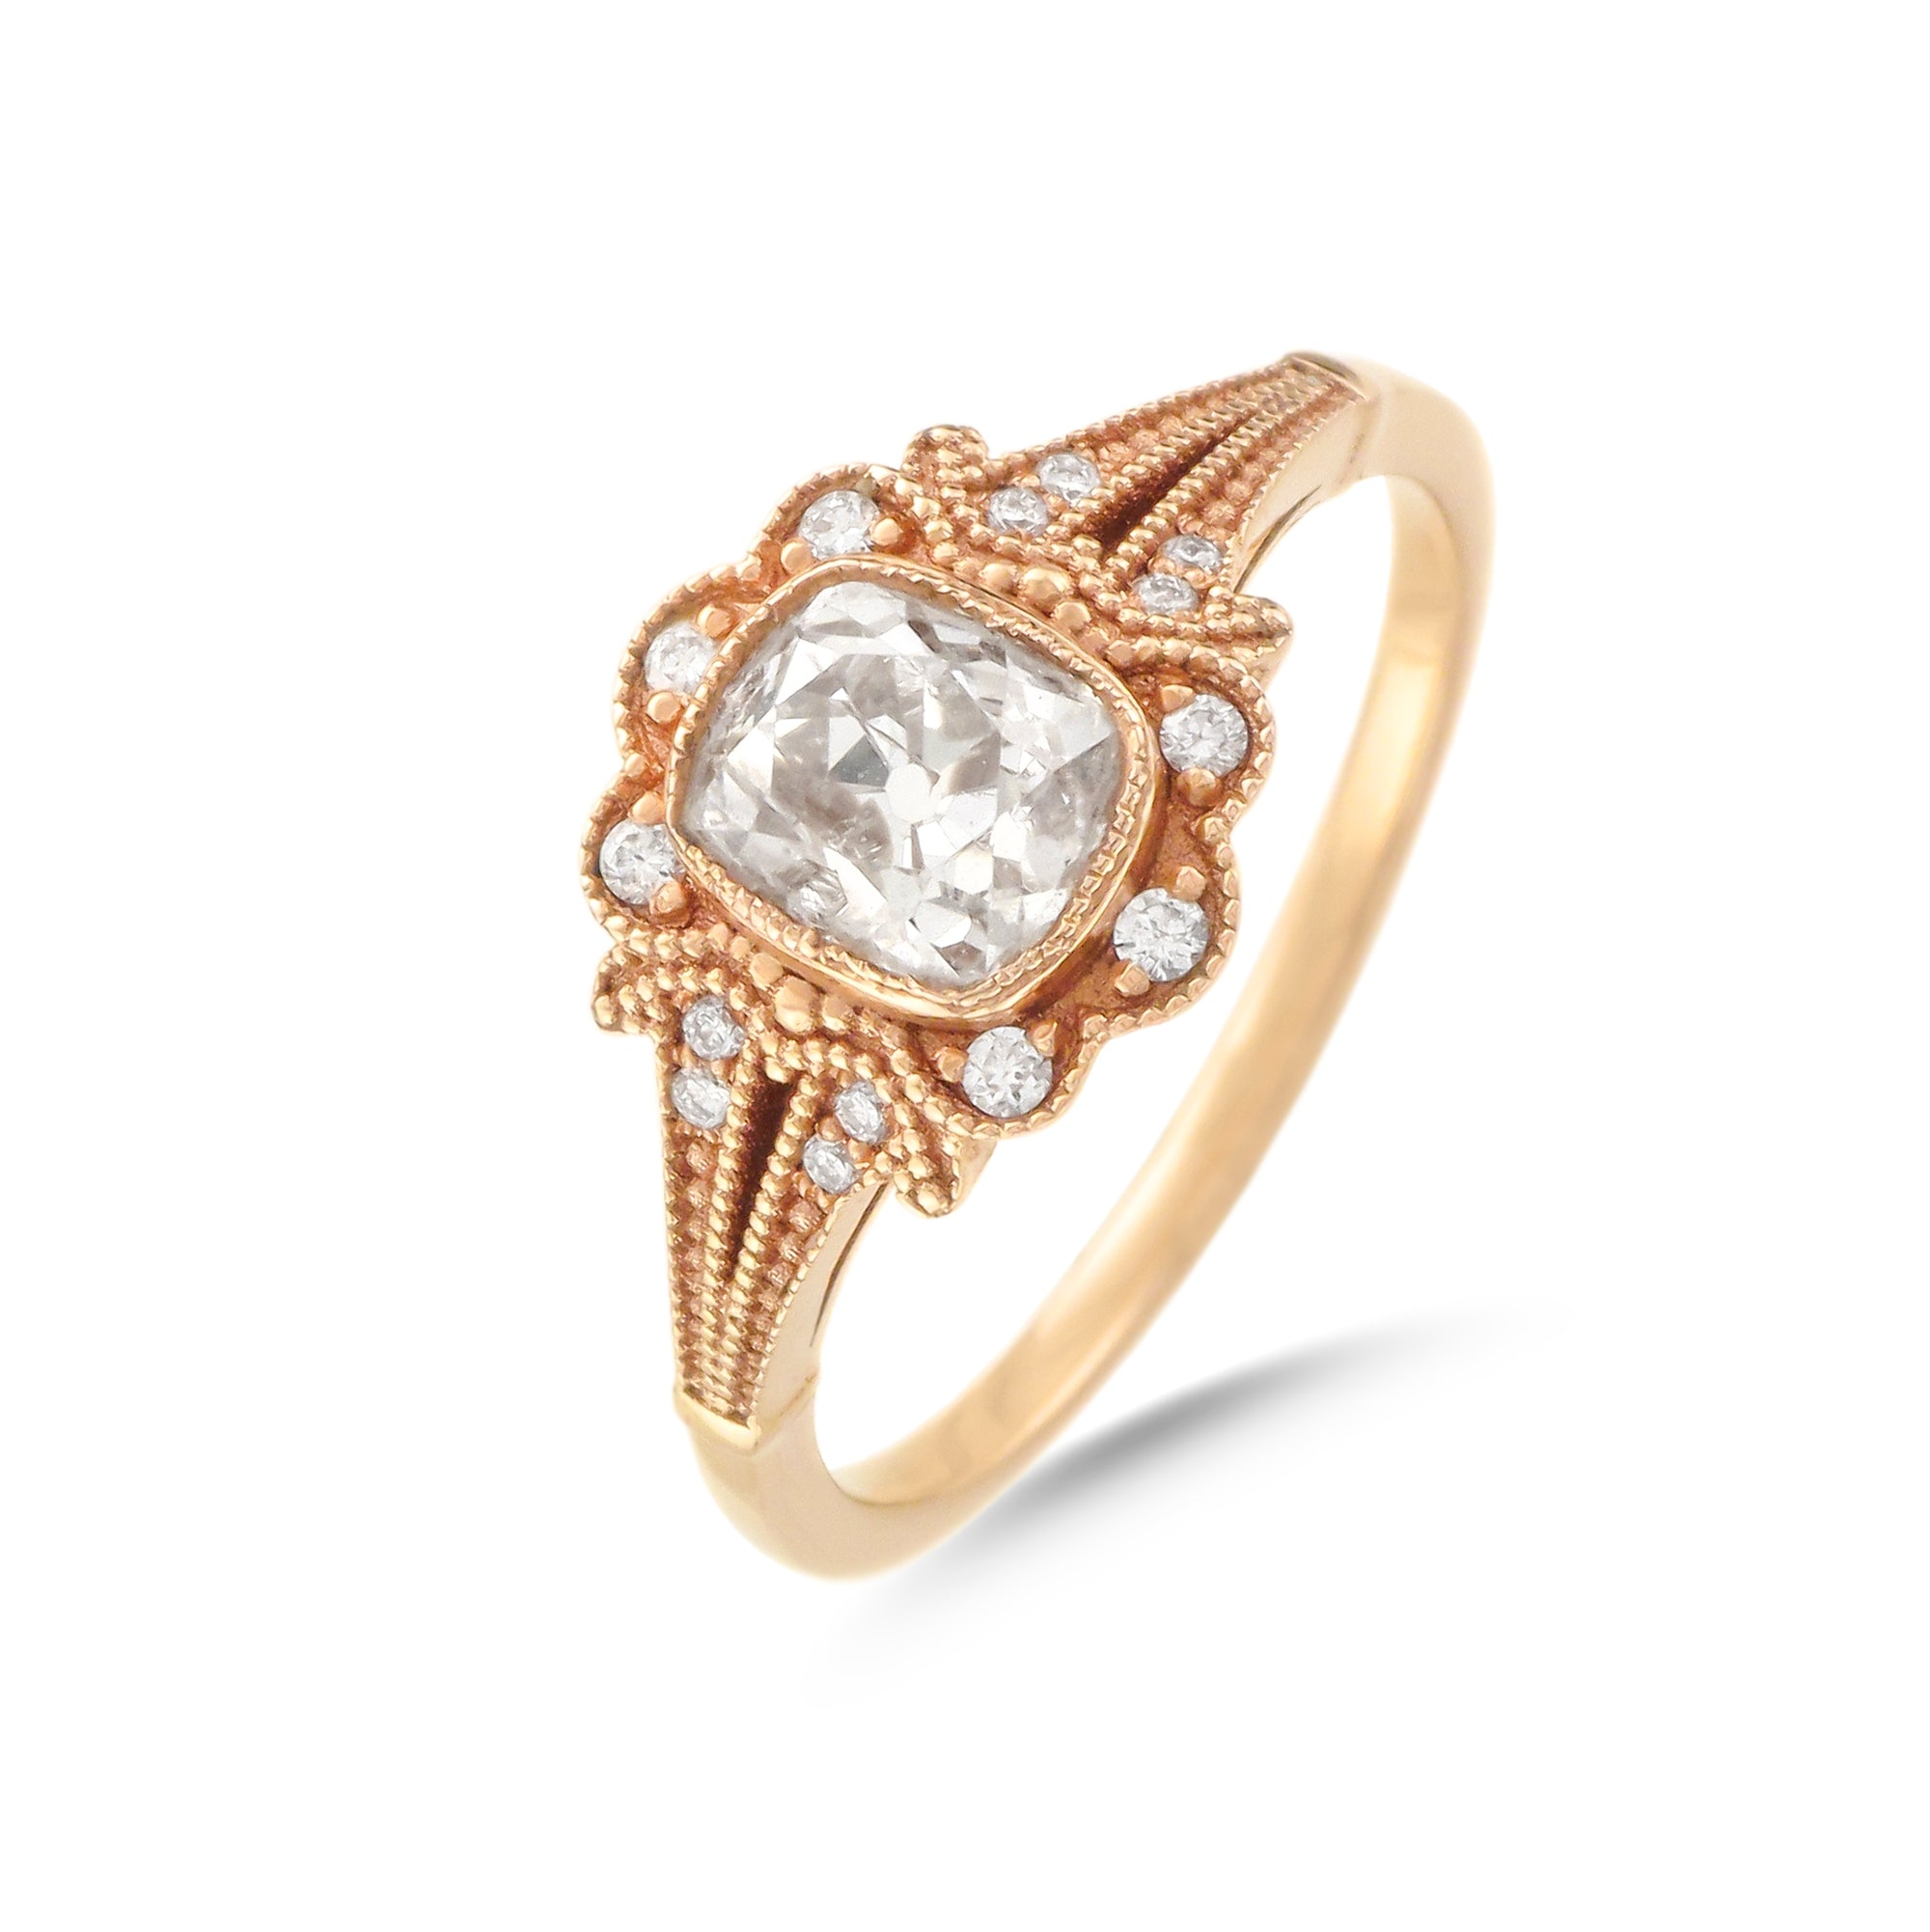 1.18ct Cushion-Cut Vintage Inspired Diamond Engagement Ring